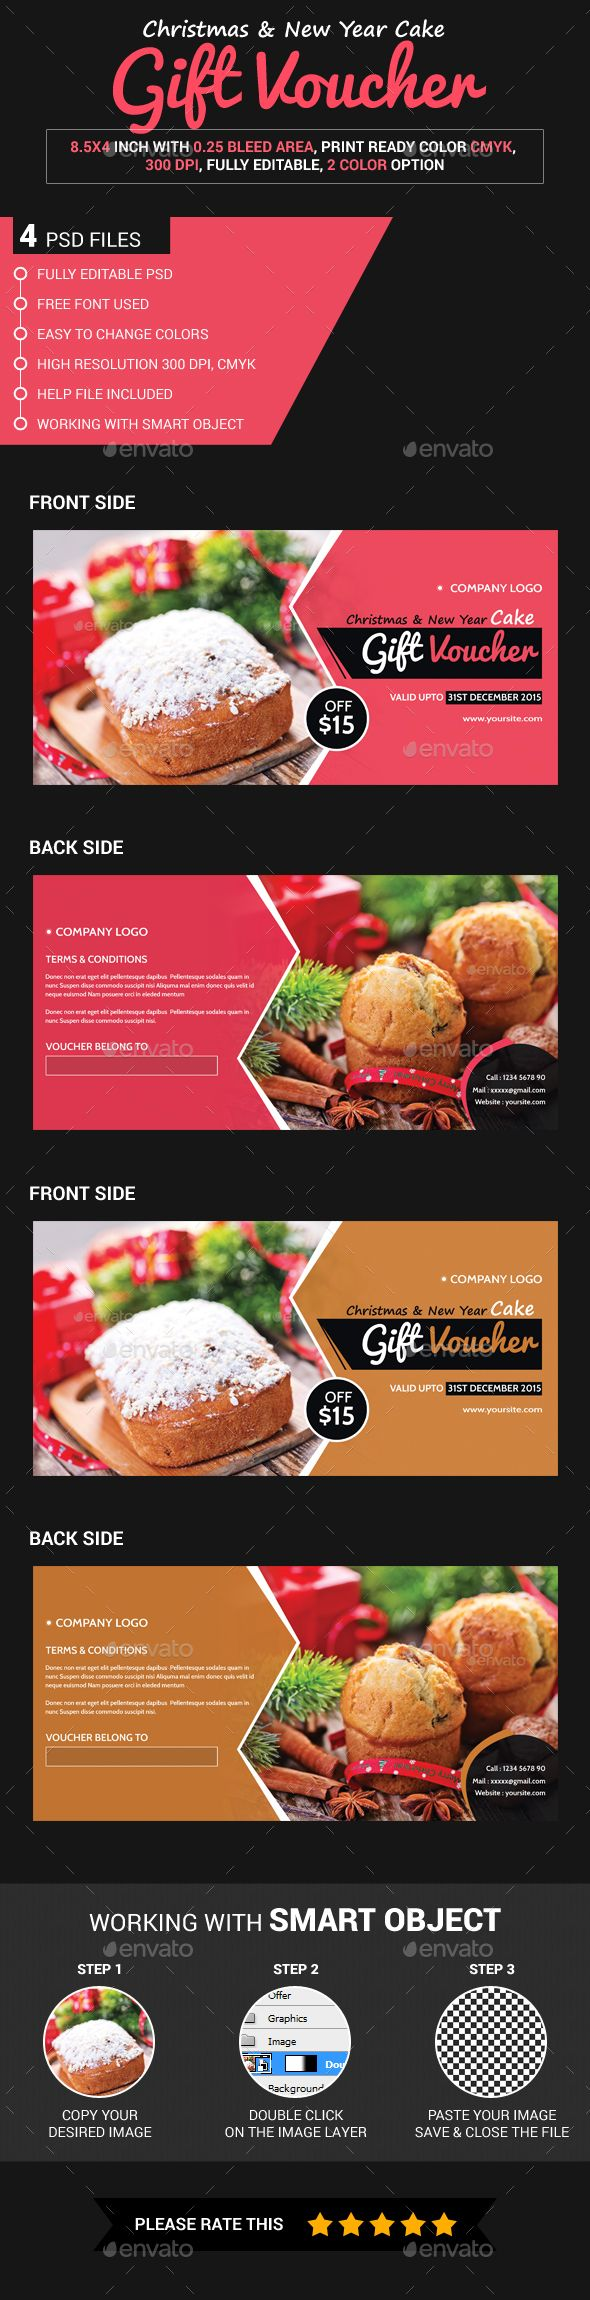 best ideas about christmas vouchers pug puppies christmas new year cake gift voucher